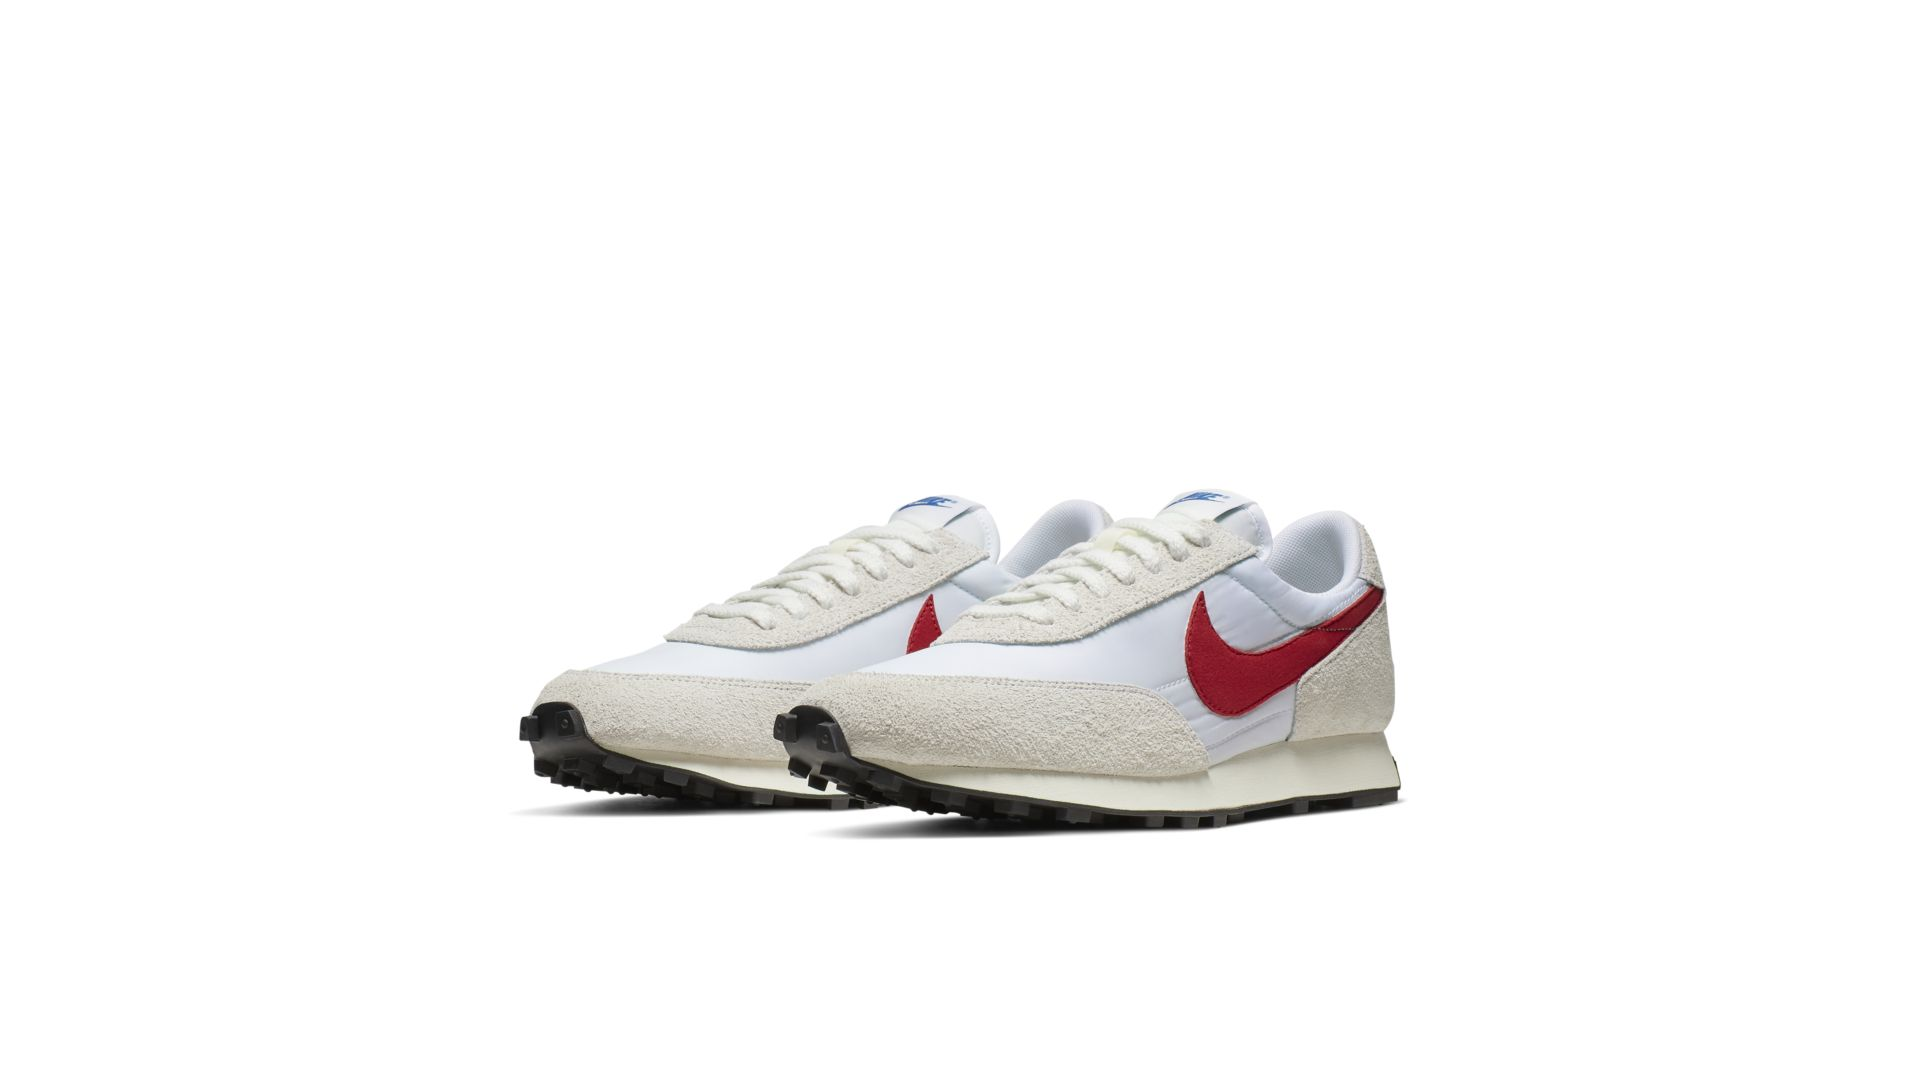 Nike Daybreak White University Red (BV7725-100)